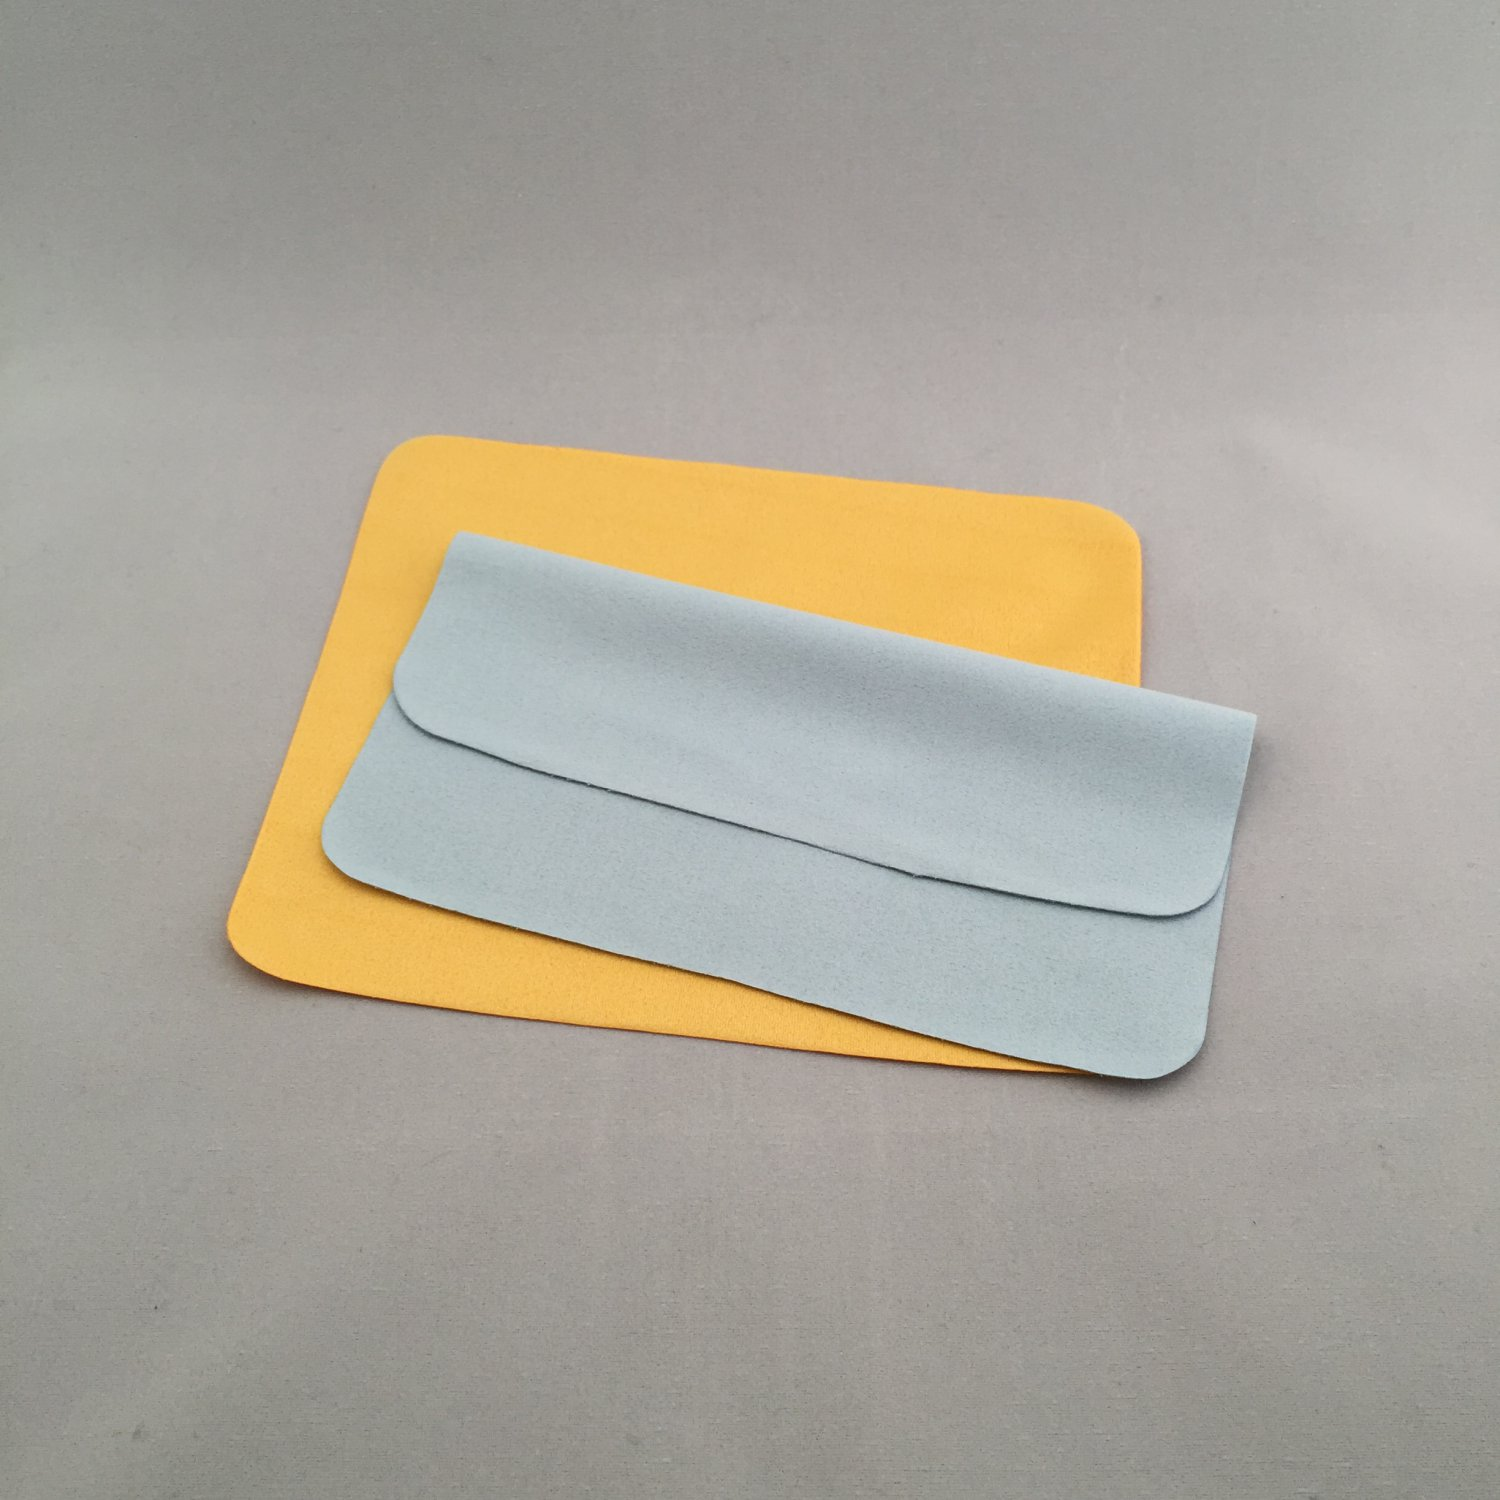 15x Chamois-style Microfibre Cleaning Cloths for Glasses